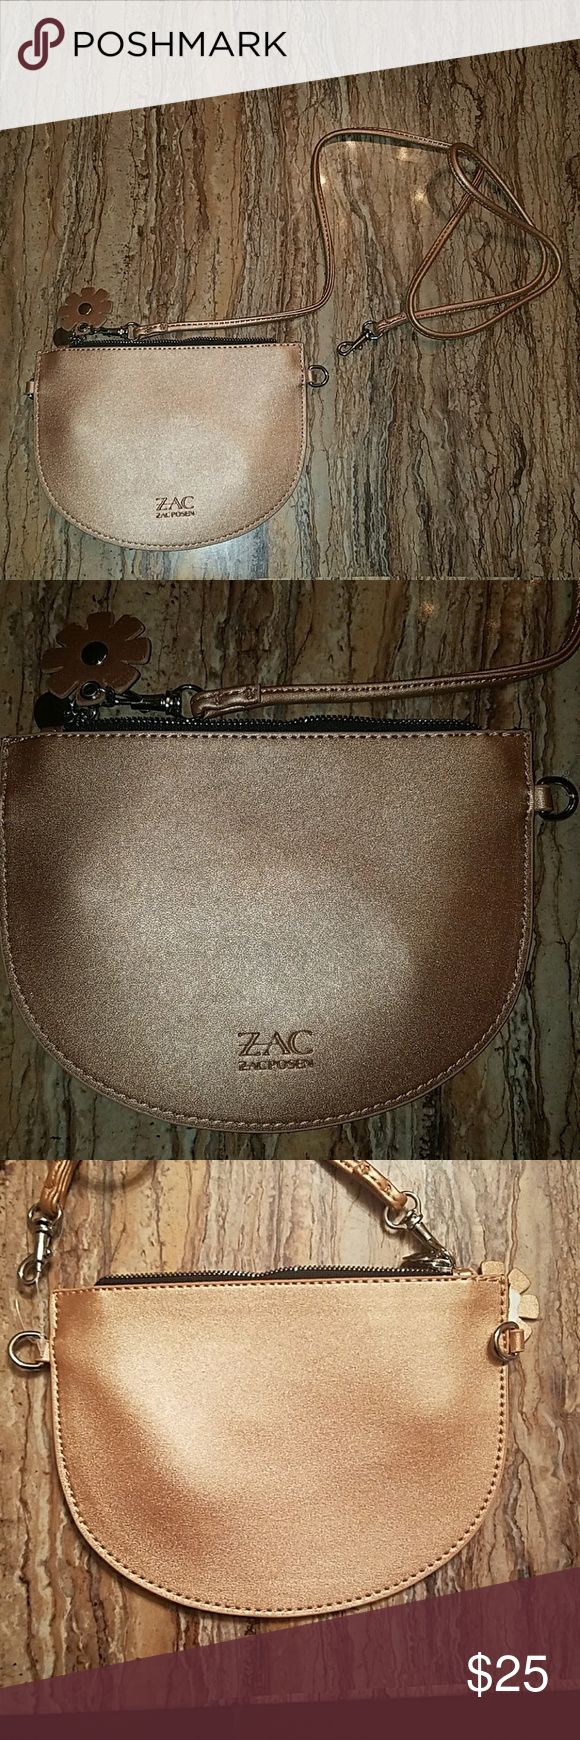 Zac Posen crossbody/clutch purse Zac Posen for Bloomingdales rose gold crossbody with detachable strap. Can be used as a clutch 6 inches long 4 inches tall. Brand new. Smoke free home. Zac Posen Bags Crossbody Bags